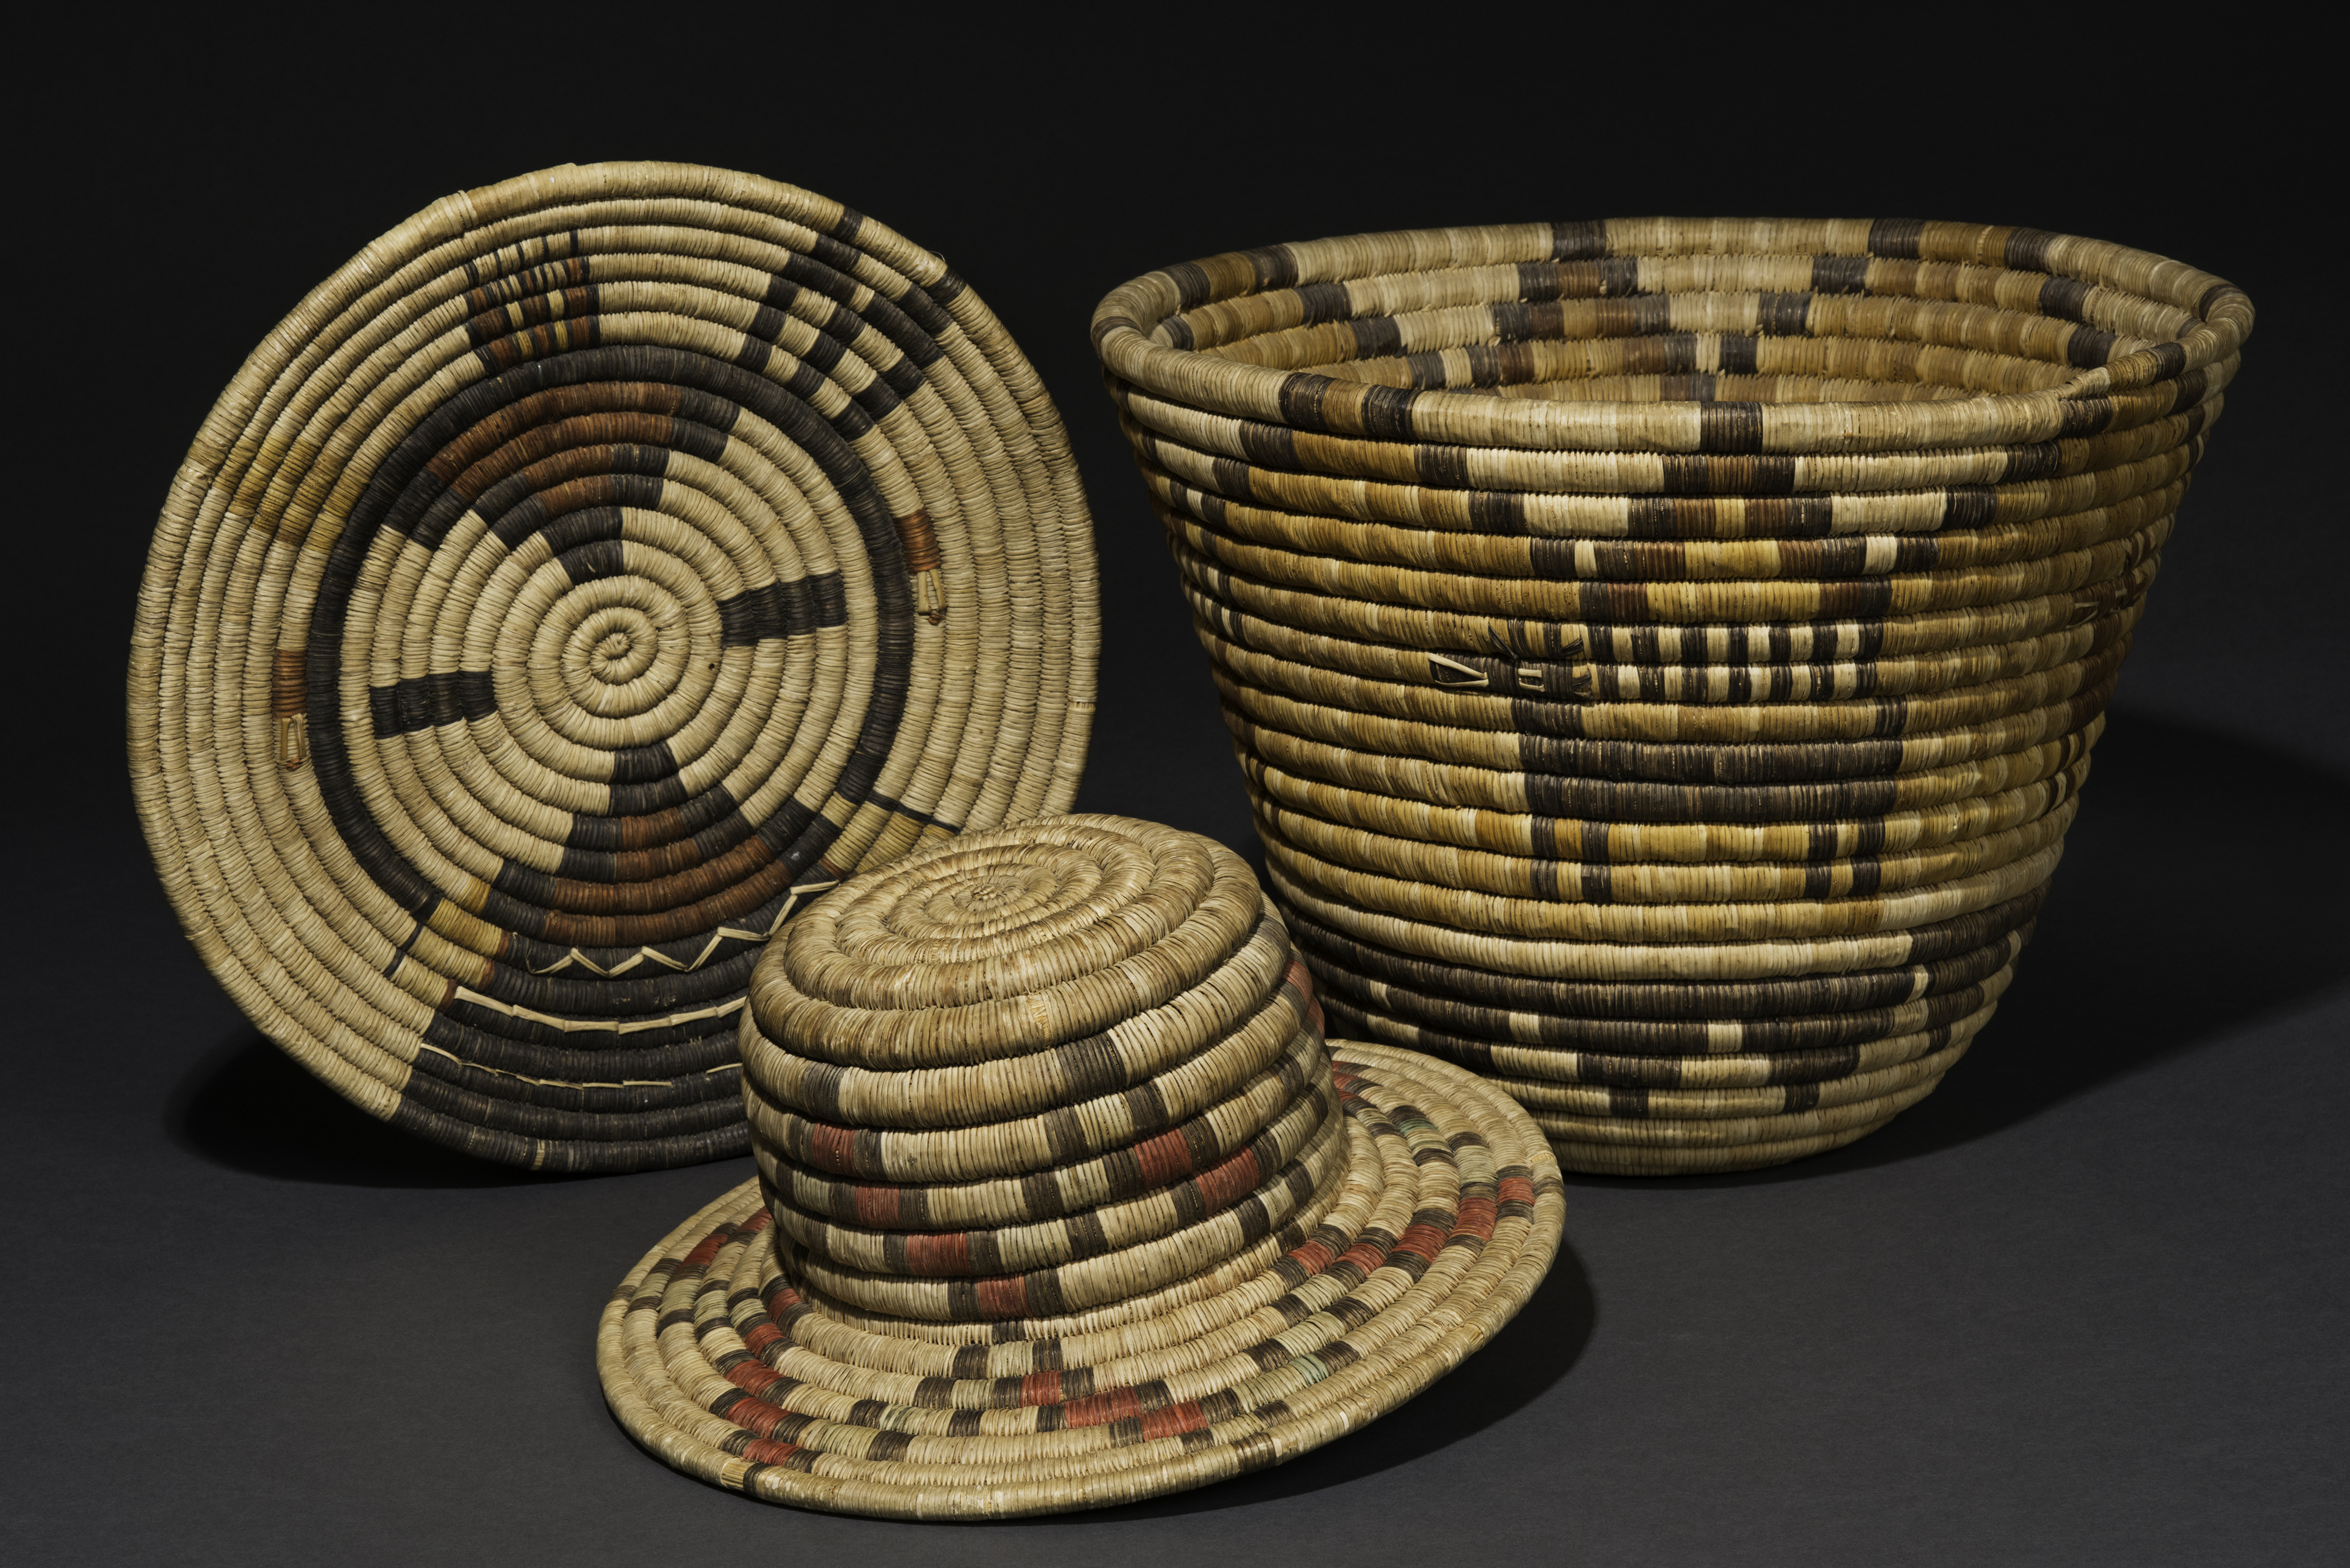 Coiled baskets from Second Mesa; yucca and galleta grass. Left to right: Hiilili katsina plaque, ca. 1975;  Novelty hat, ca. 1920;  Bowl with antelope and cloud design, ca. 1945. Gifts of Judith and Andrew Finger, 2018